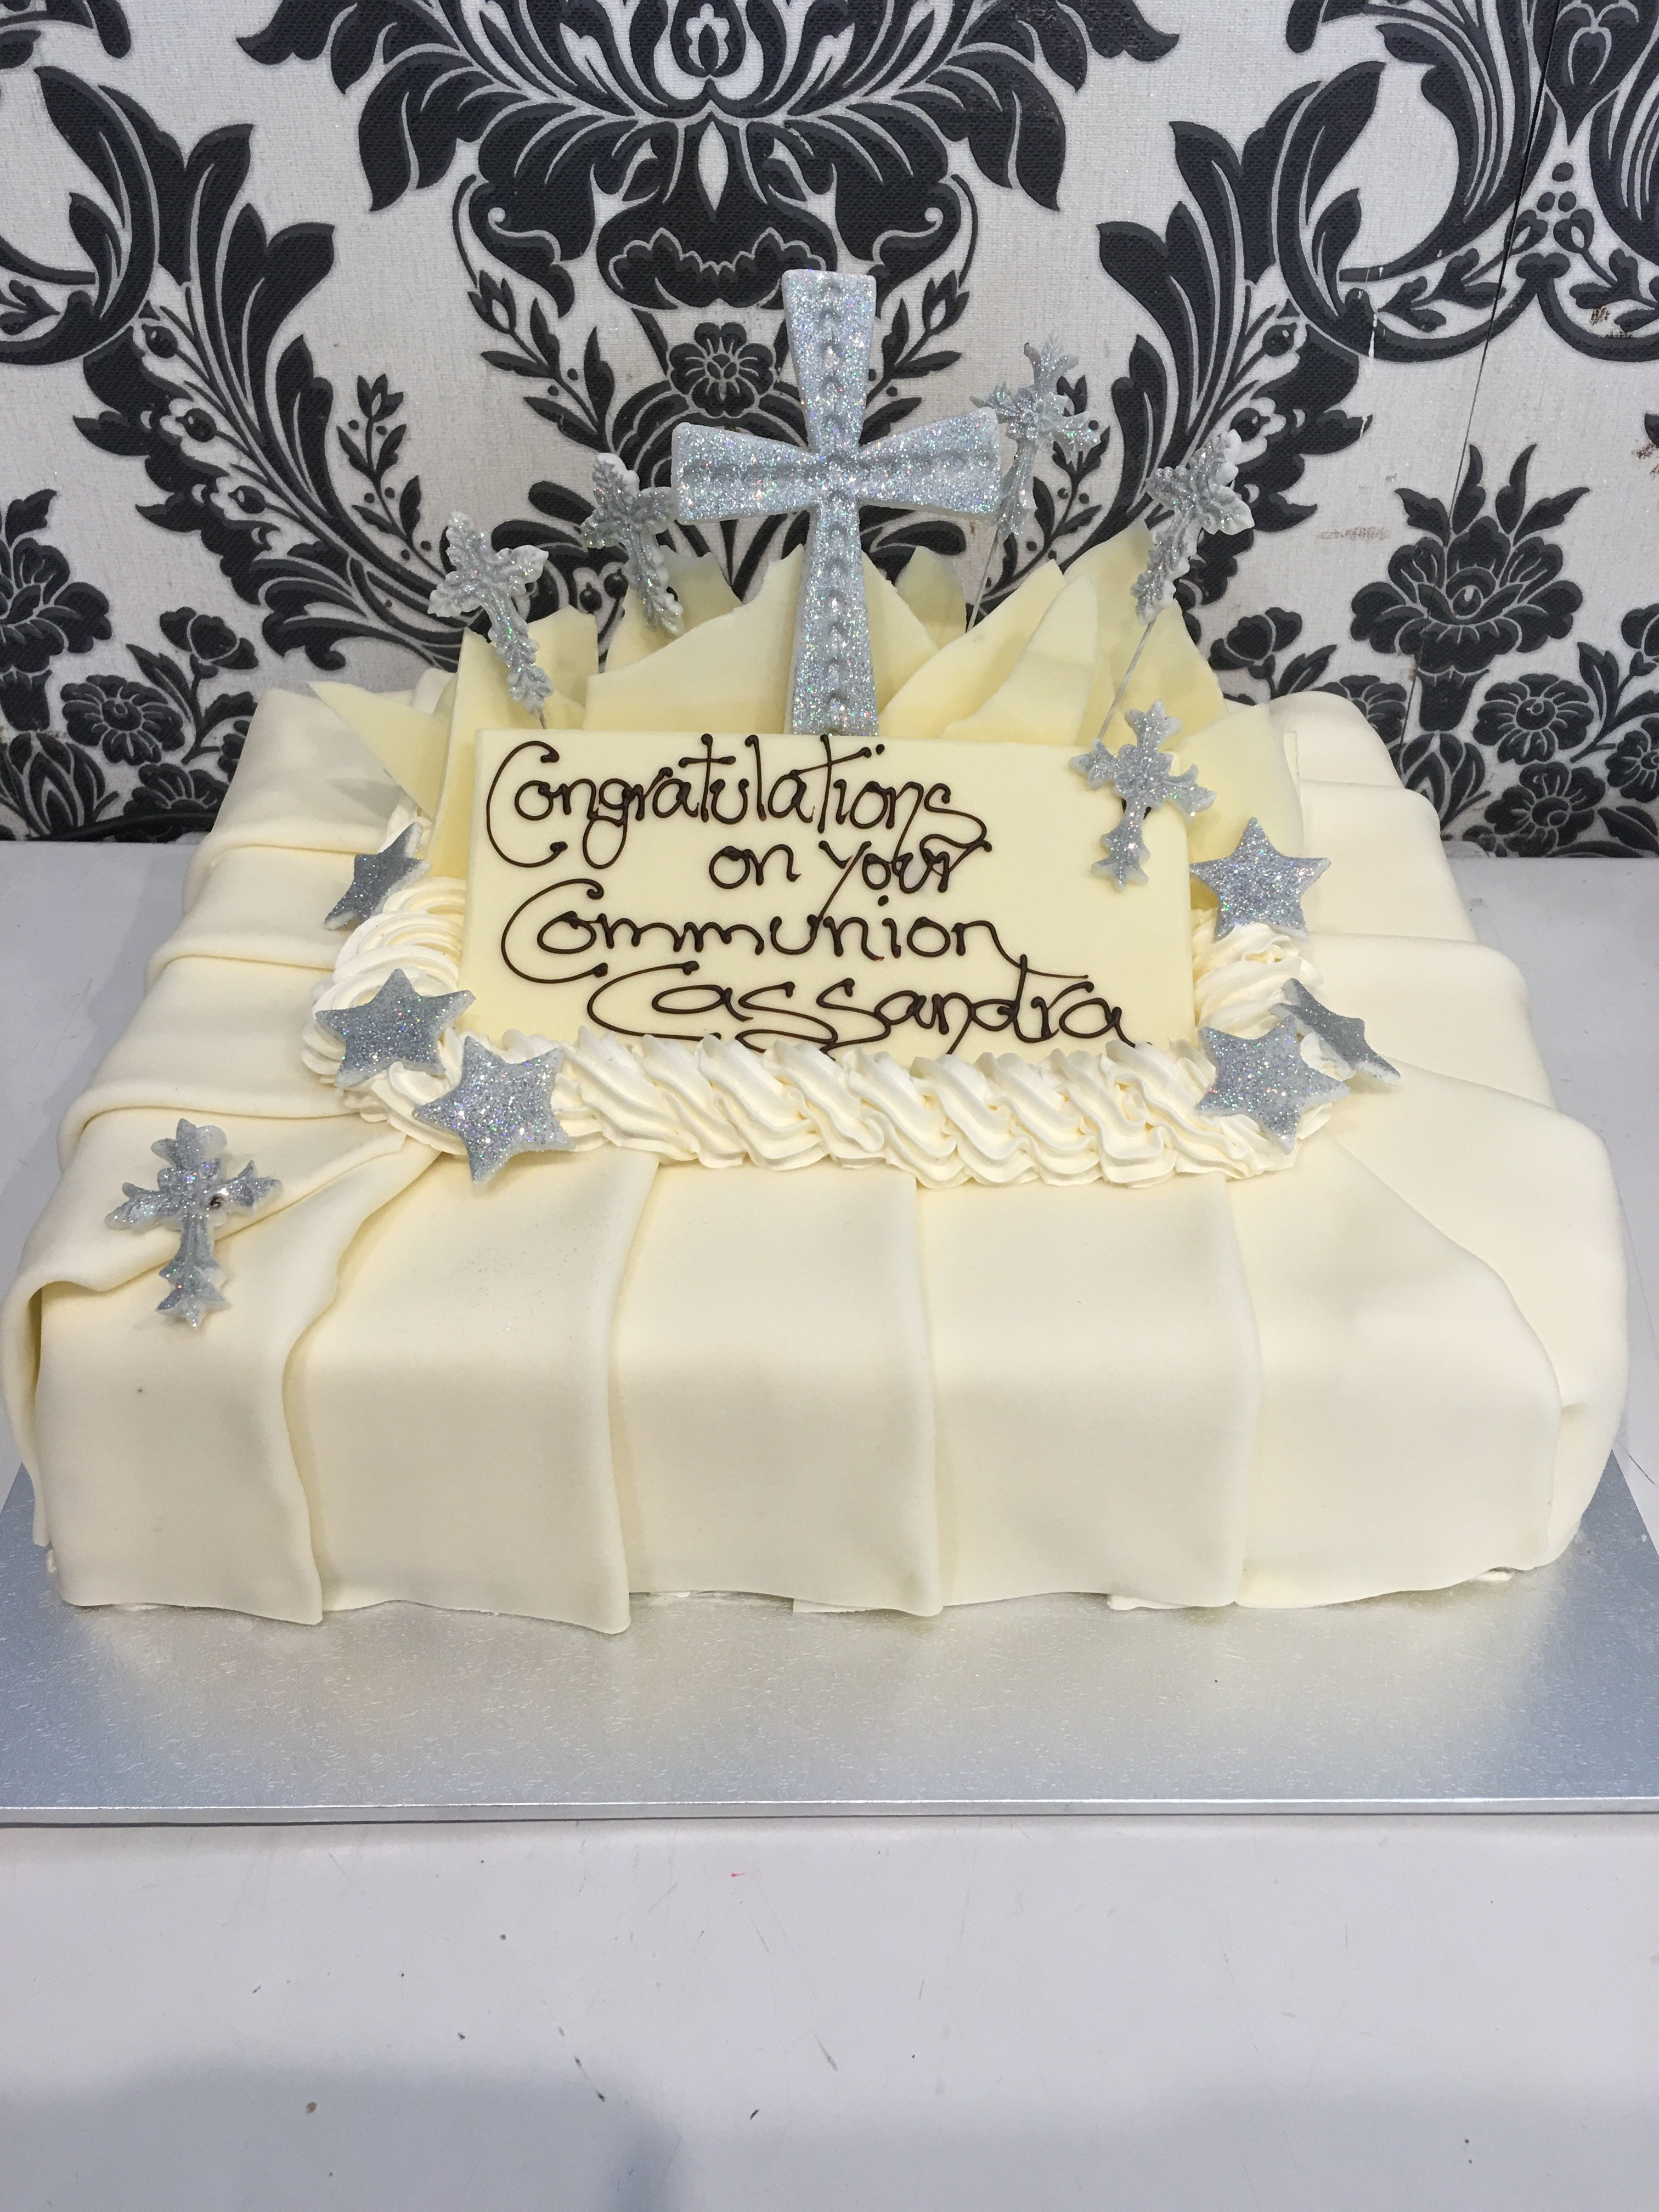 white holy communion cake with silver cross on top